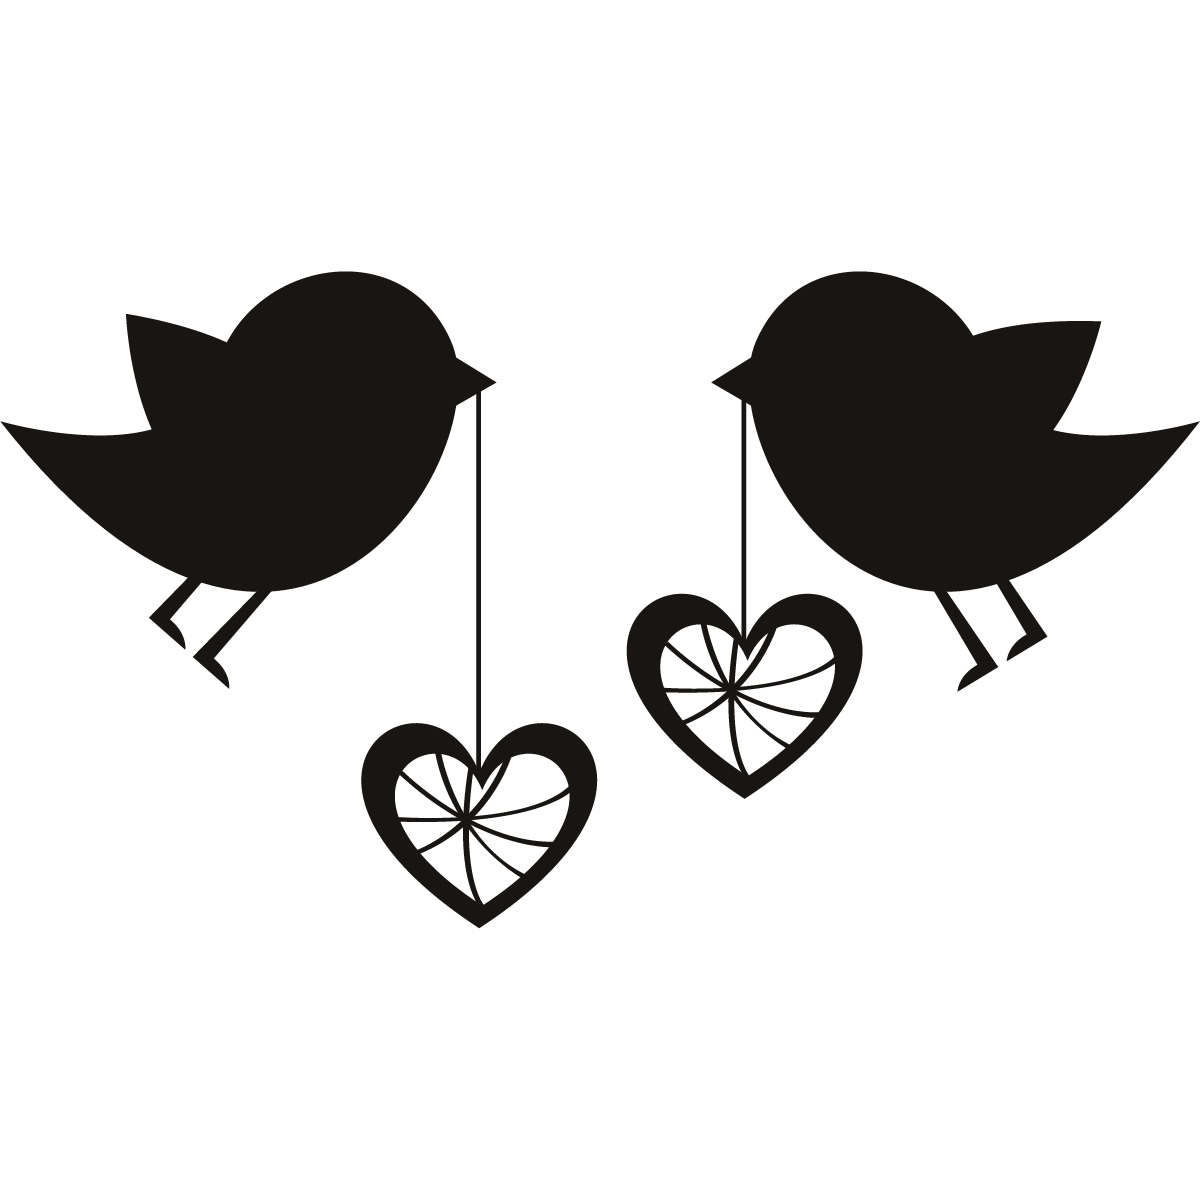 Love clipart black and white Beautiful Cosy Love Clipart Black And.